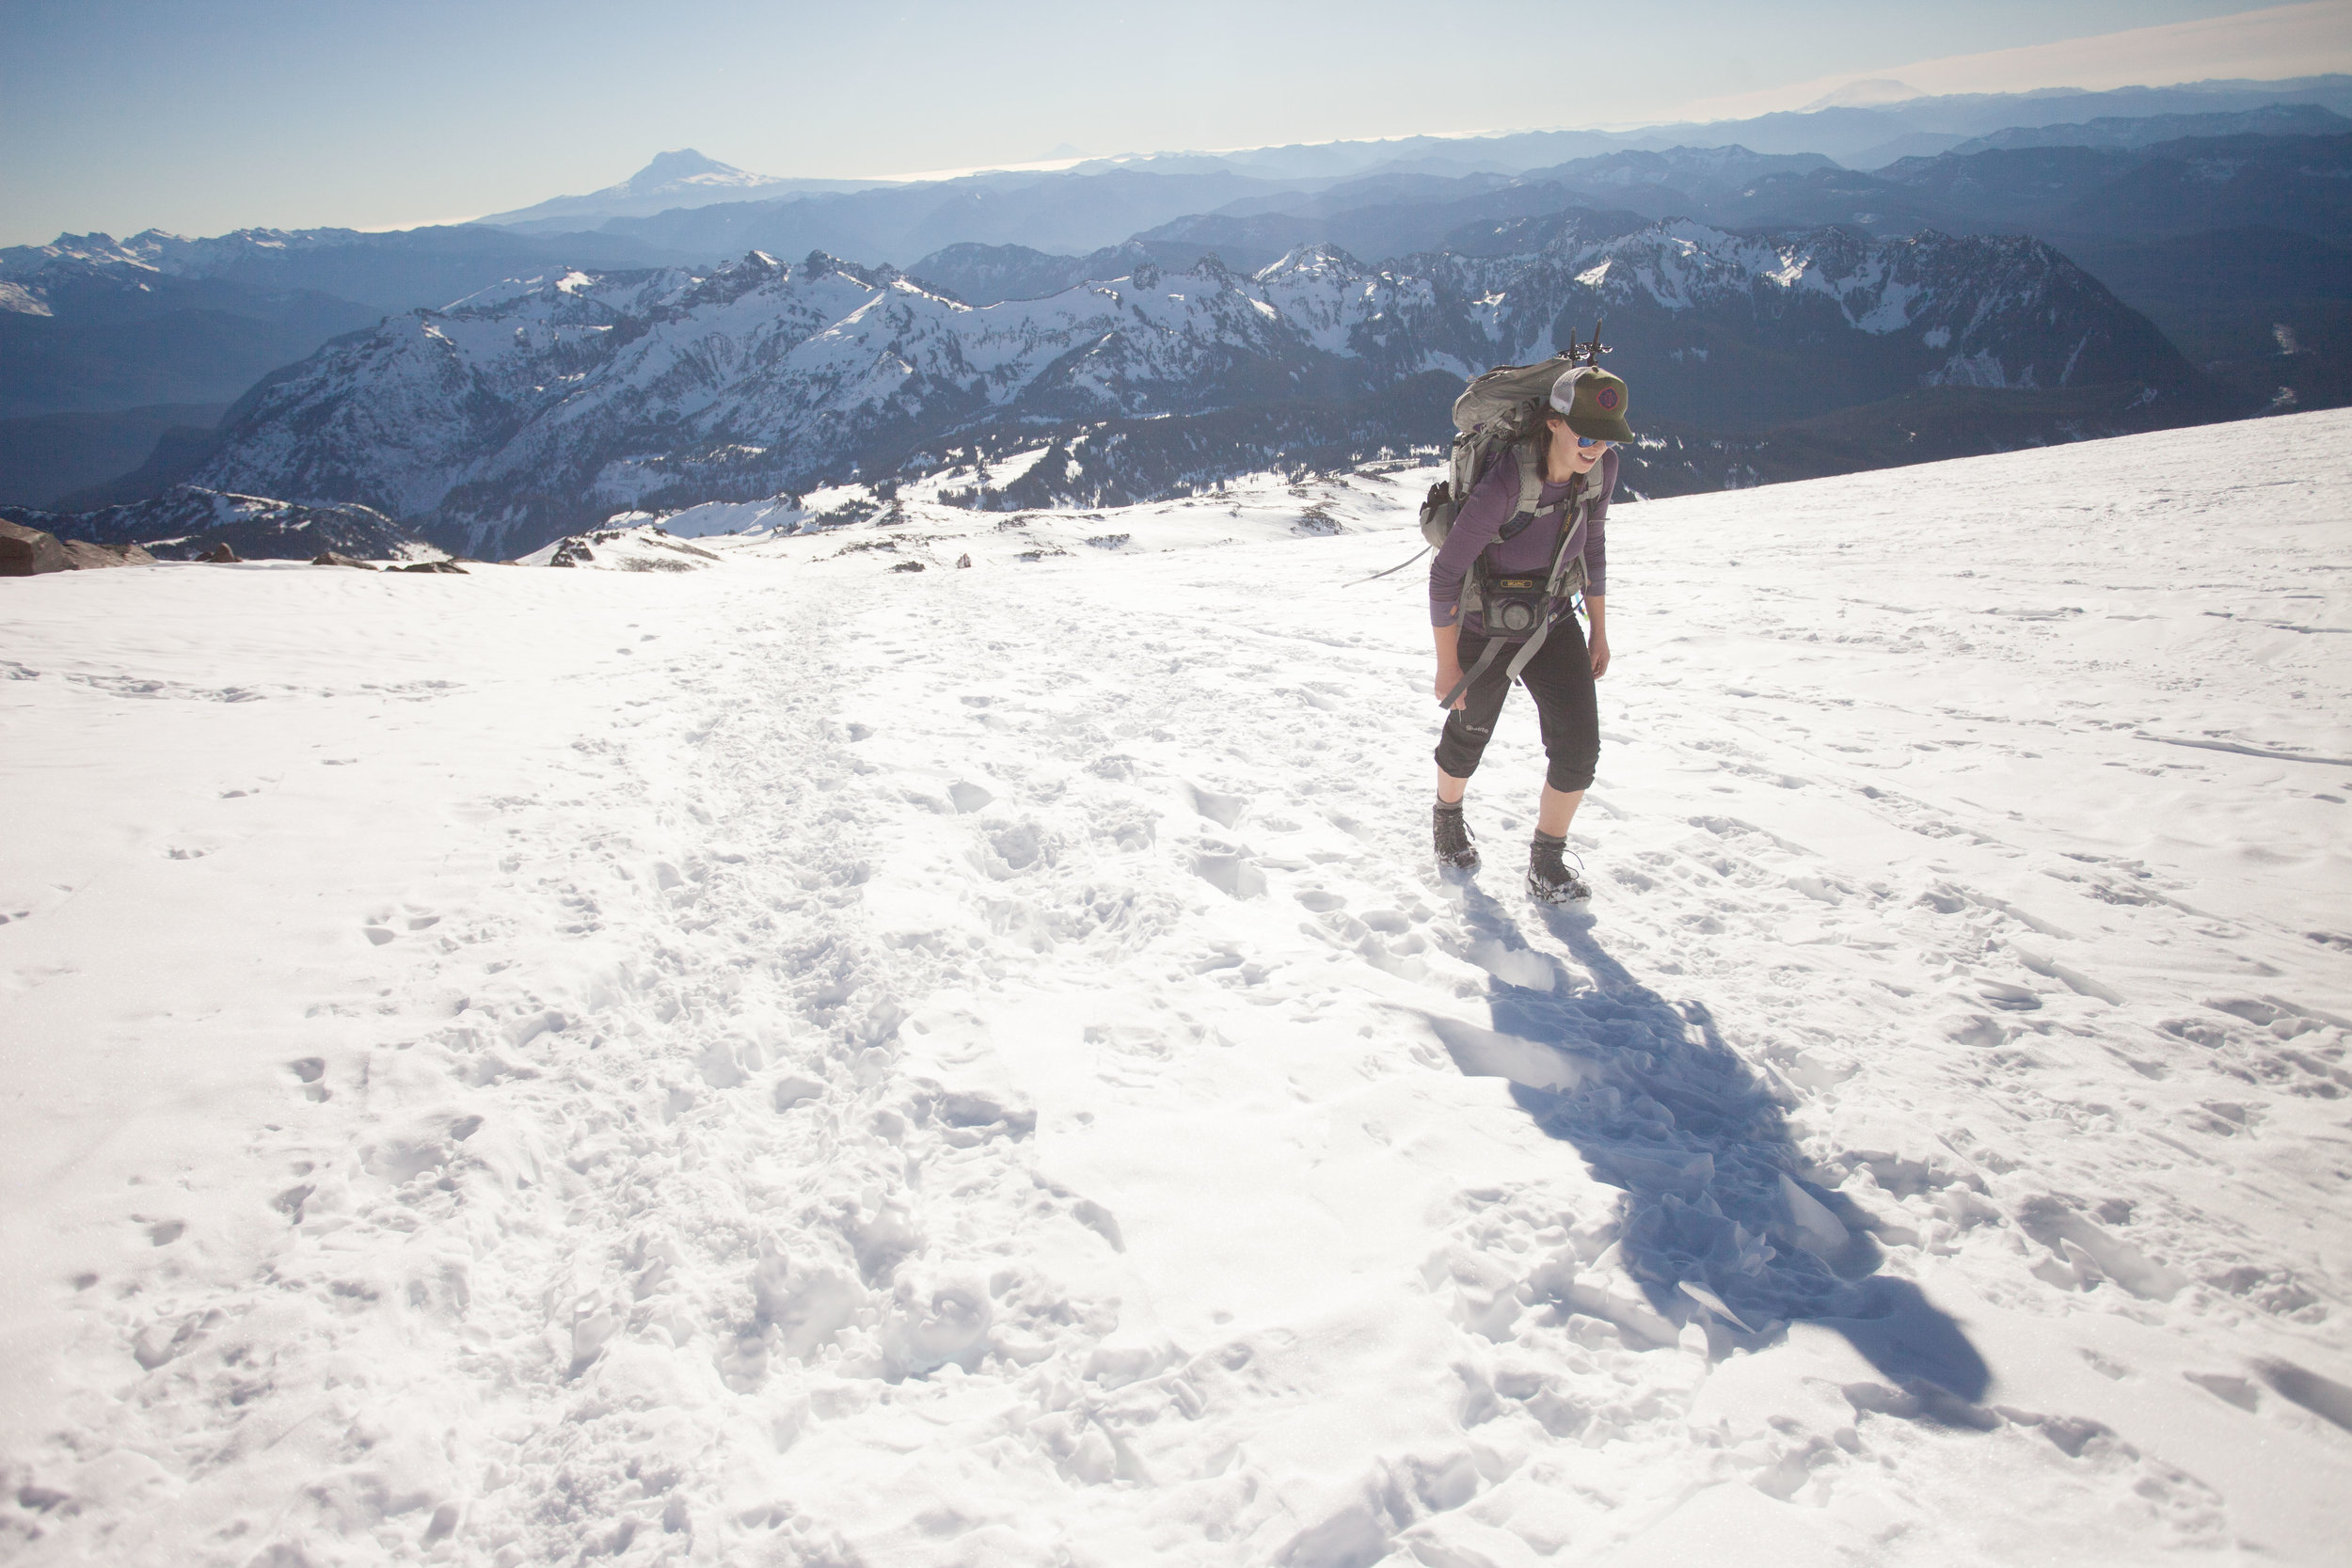 Heading up Muir Snowfield, the snow began to soften up in the bright sunshine.